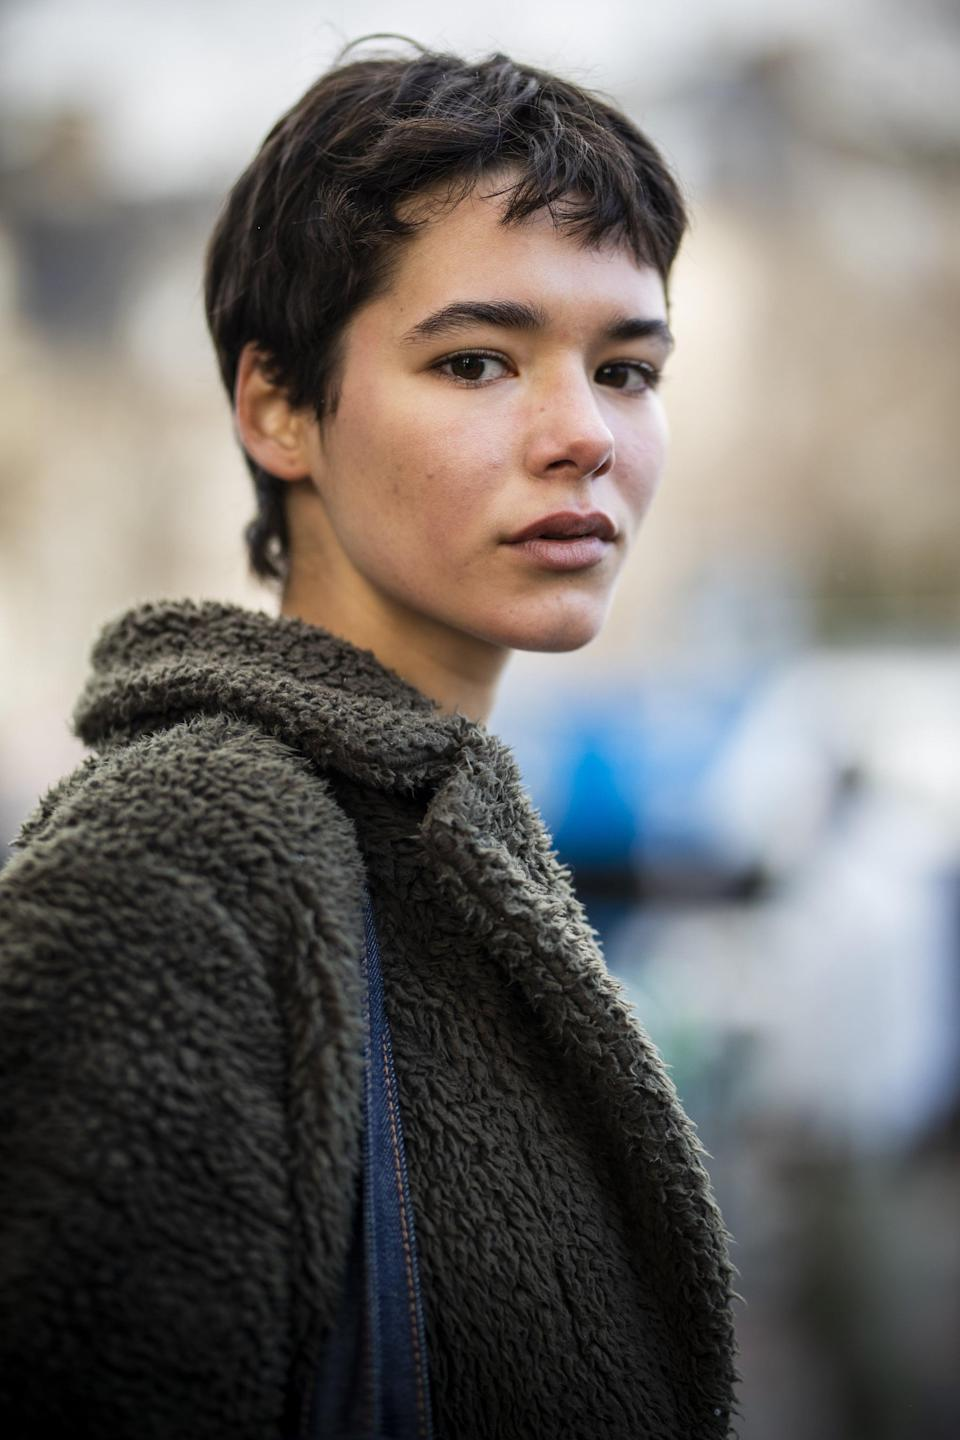 <p>We can't think of a better haircut for an intense and seductive person like a Scorpio than the pixie cut. The extrashort length is chic, no-fuss, and daring. </p>